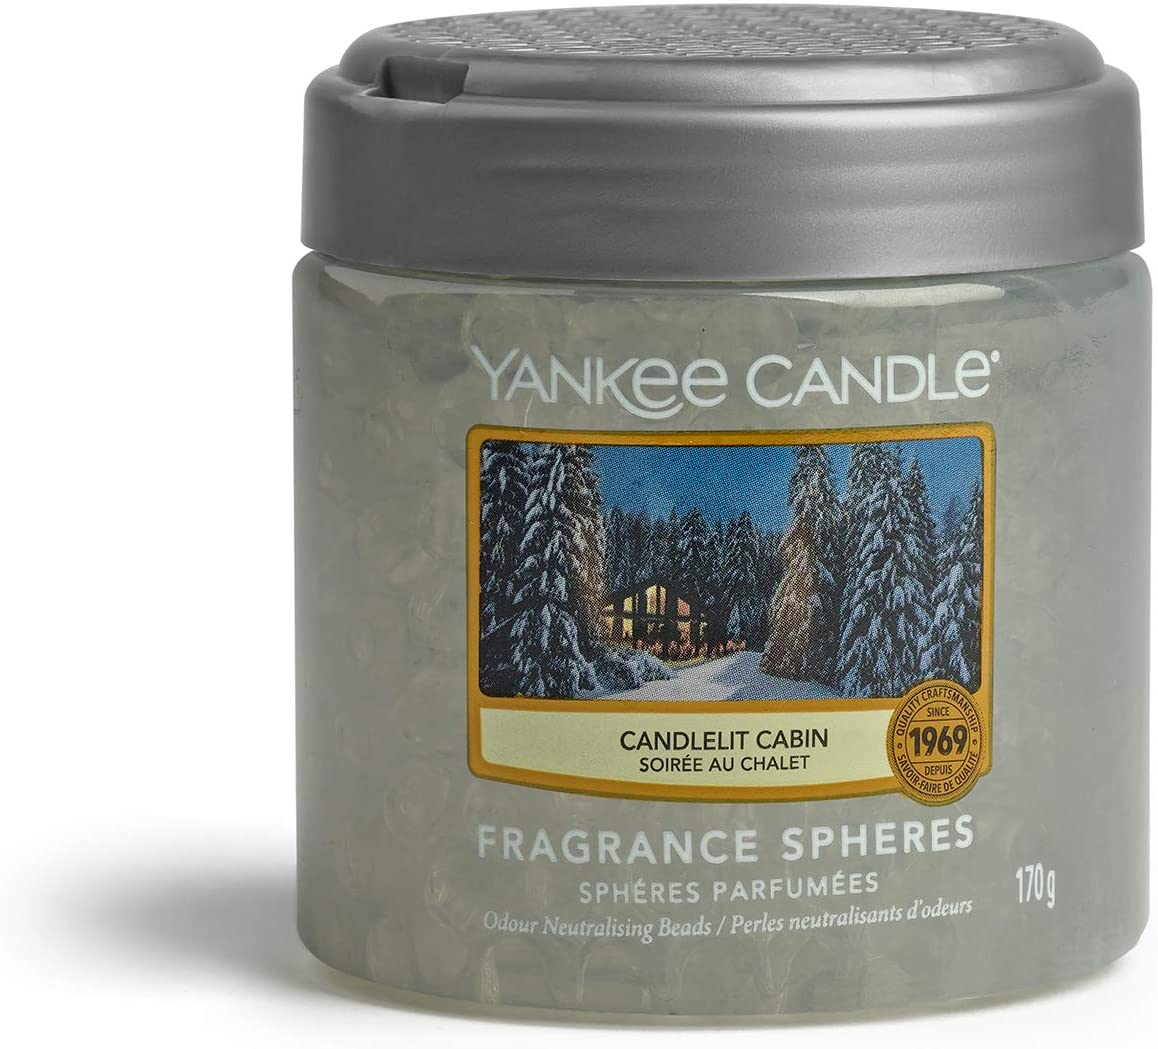 Yankee Candle Candlelit Cabin Fragrance Sphere